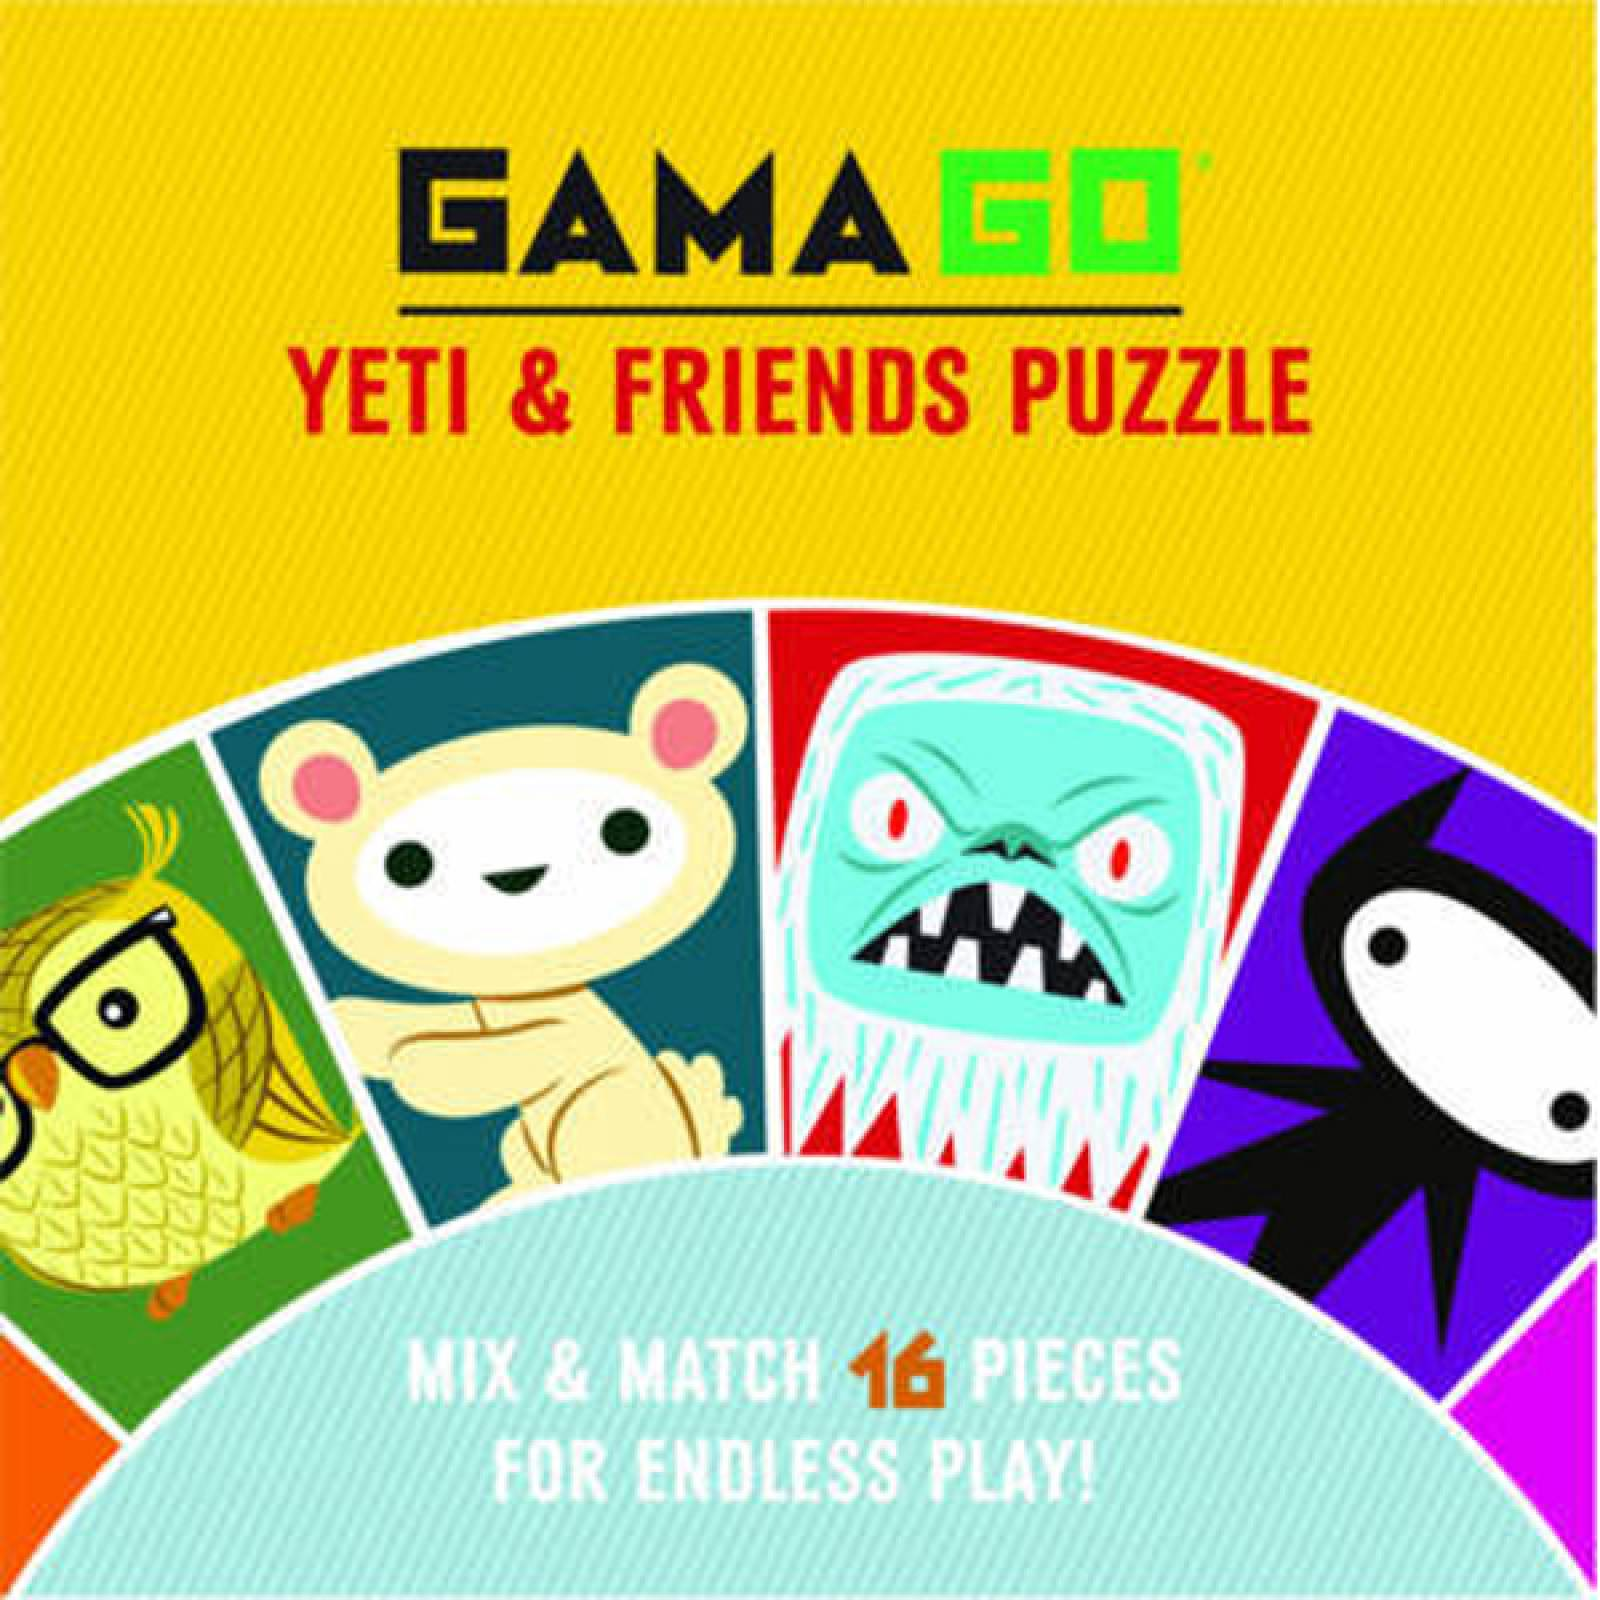 Yeti & Friends Puzzle 16 Piece Mix And Match thumbnails